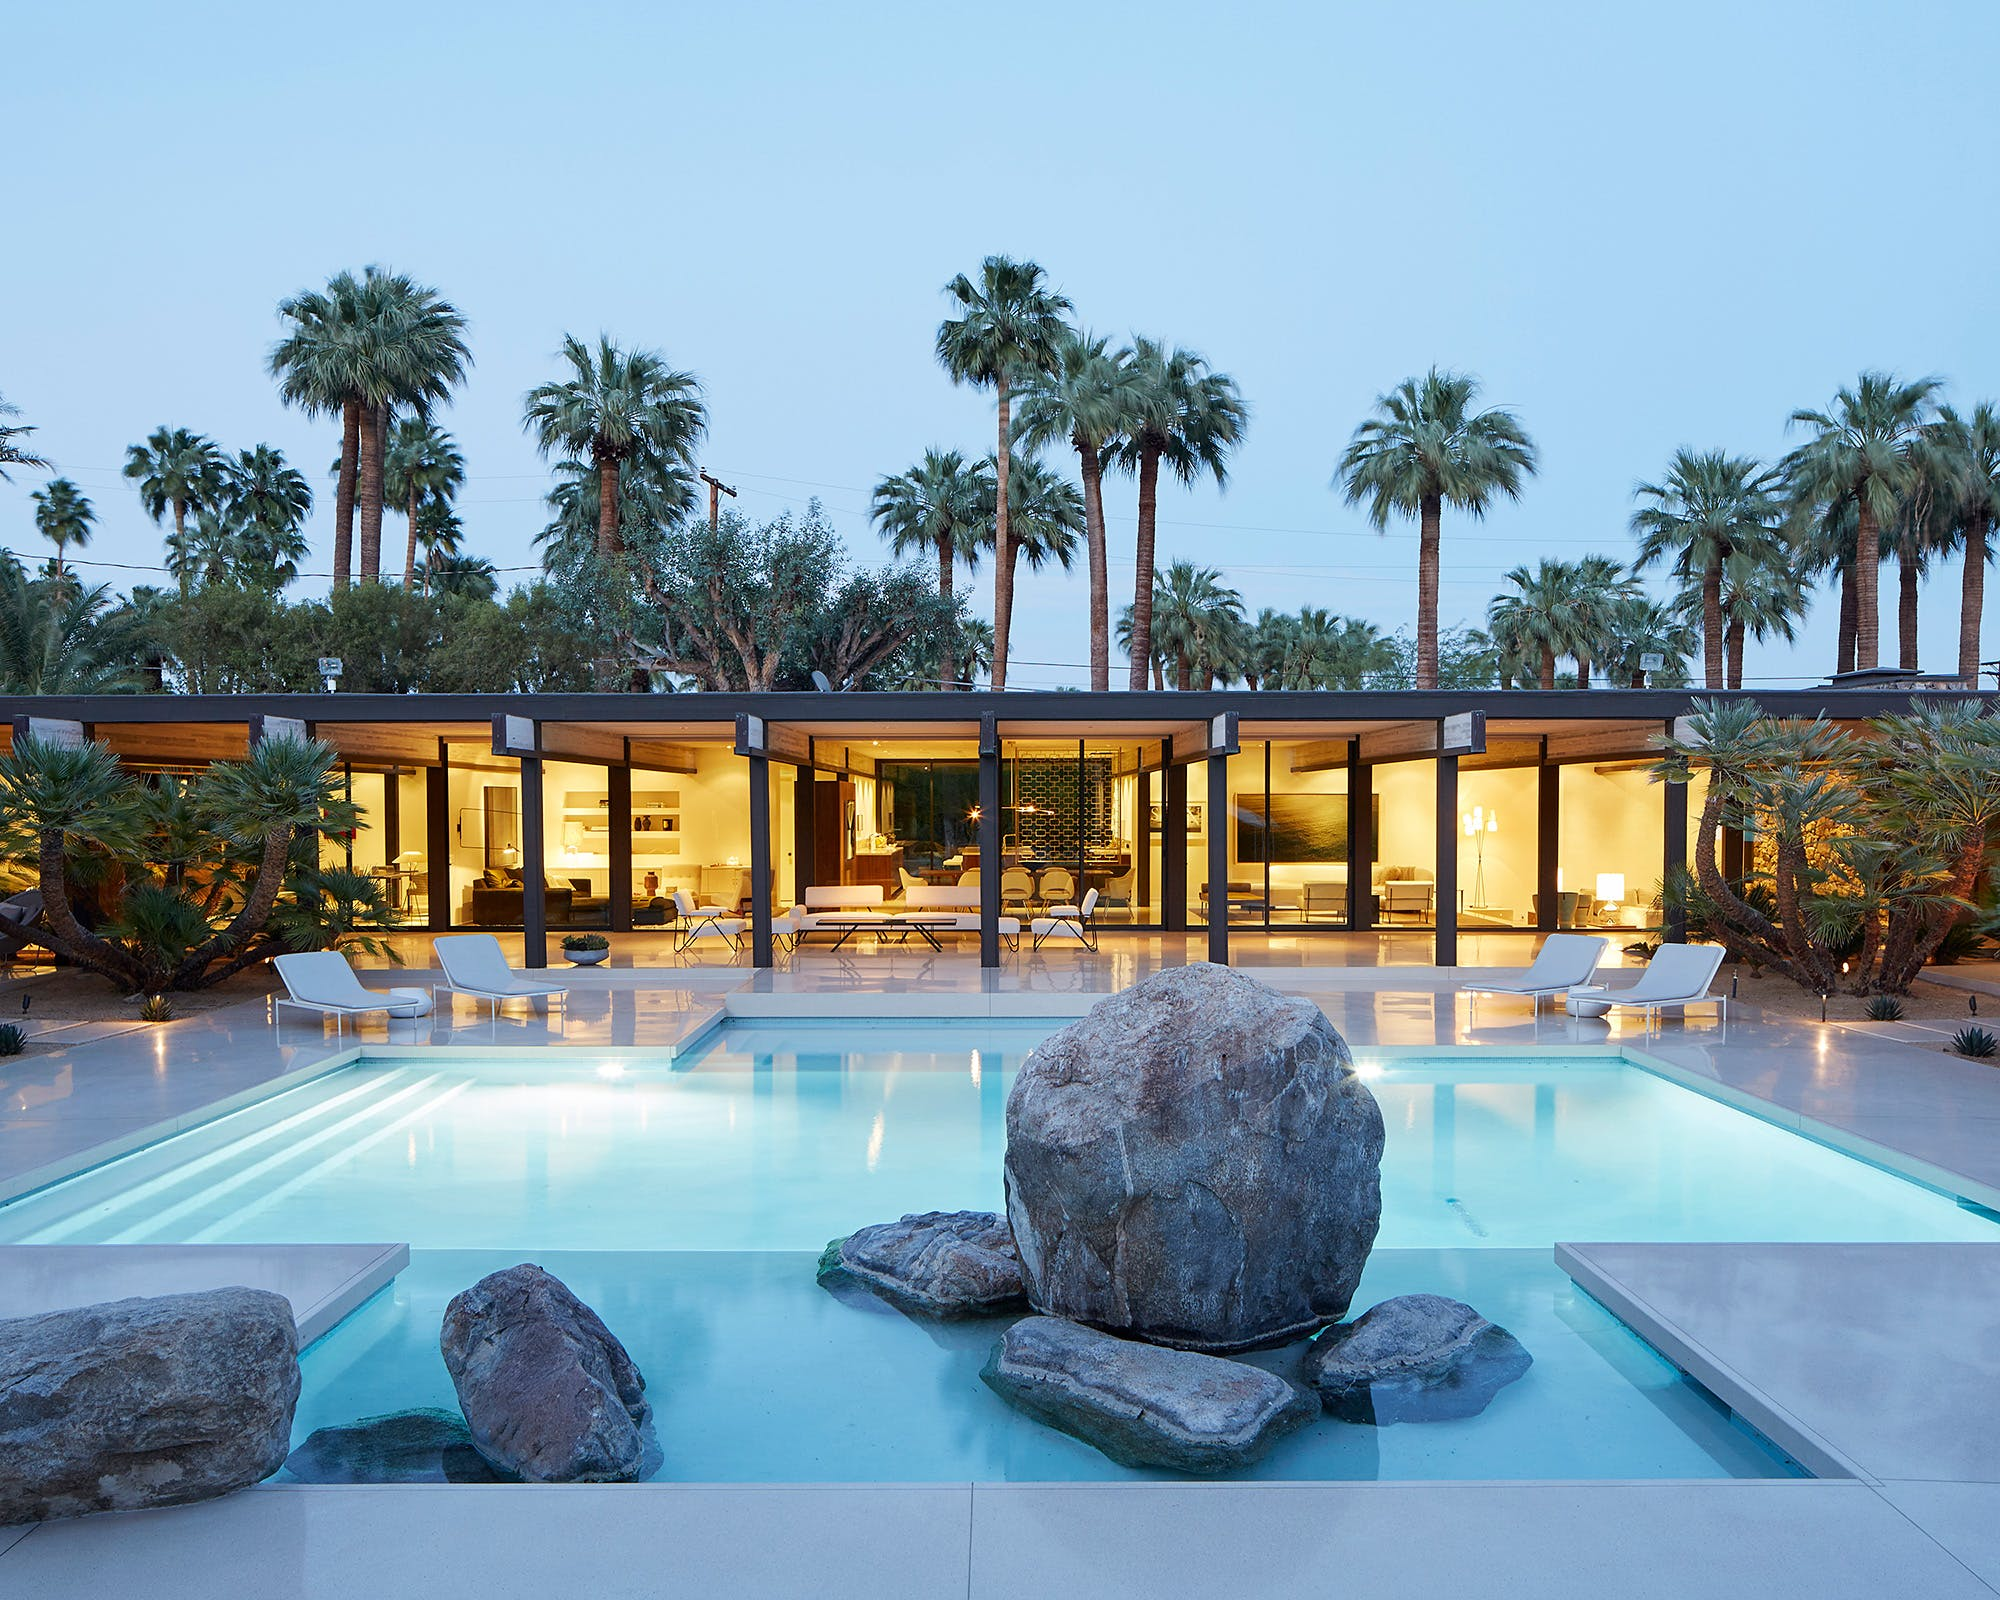 California Living: AIA Los Angeles selects 23 Residential